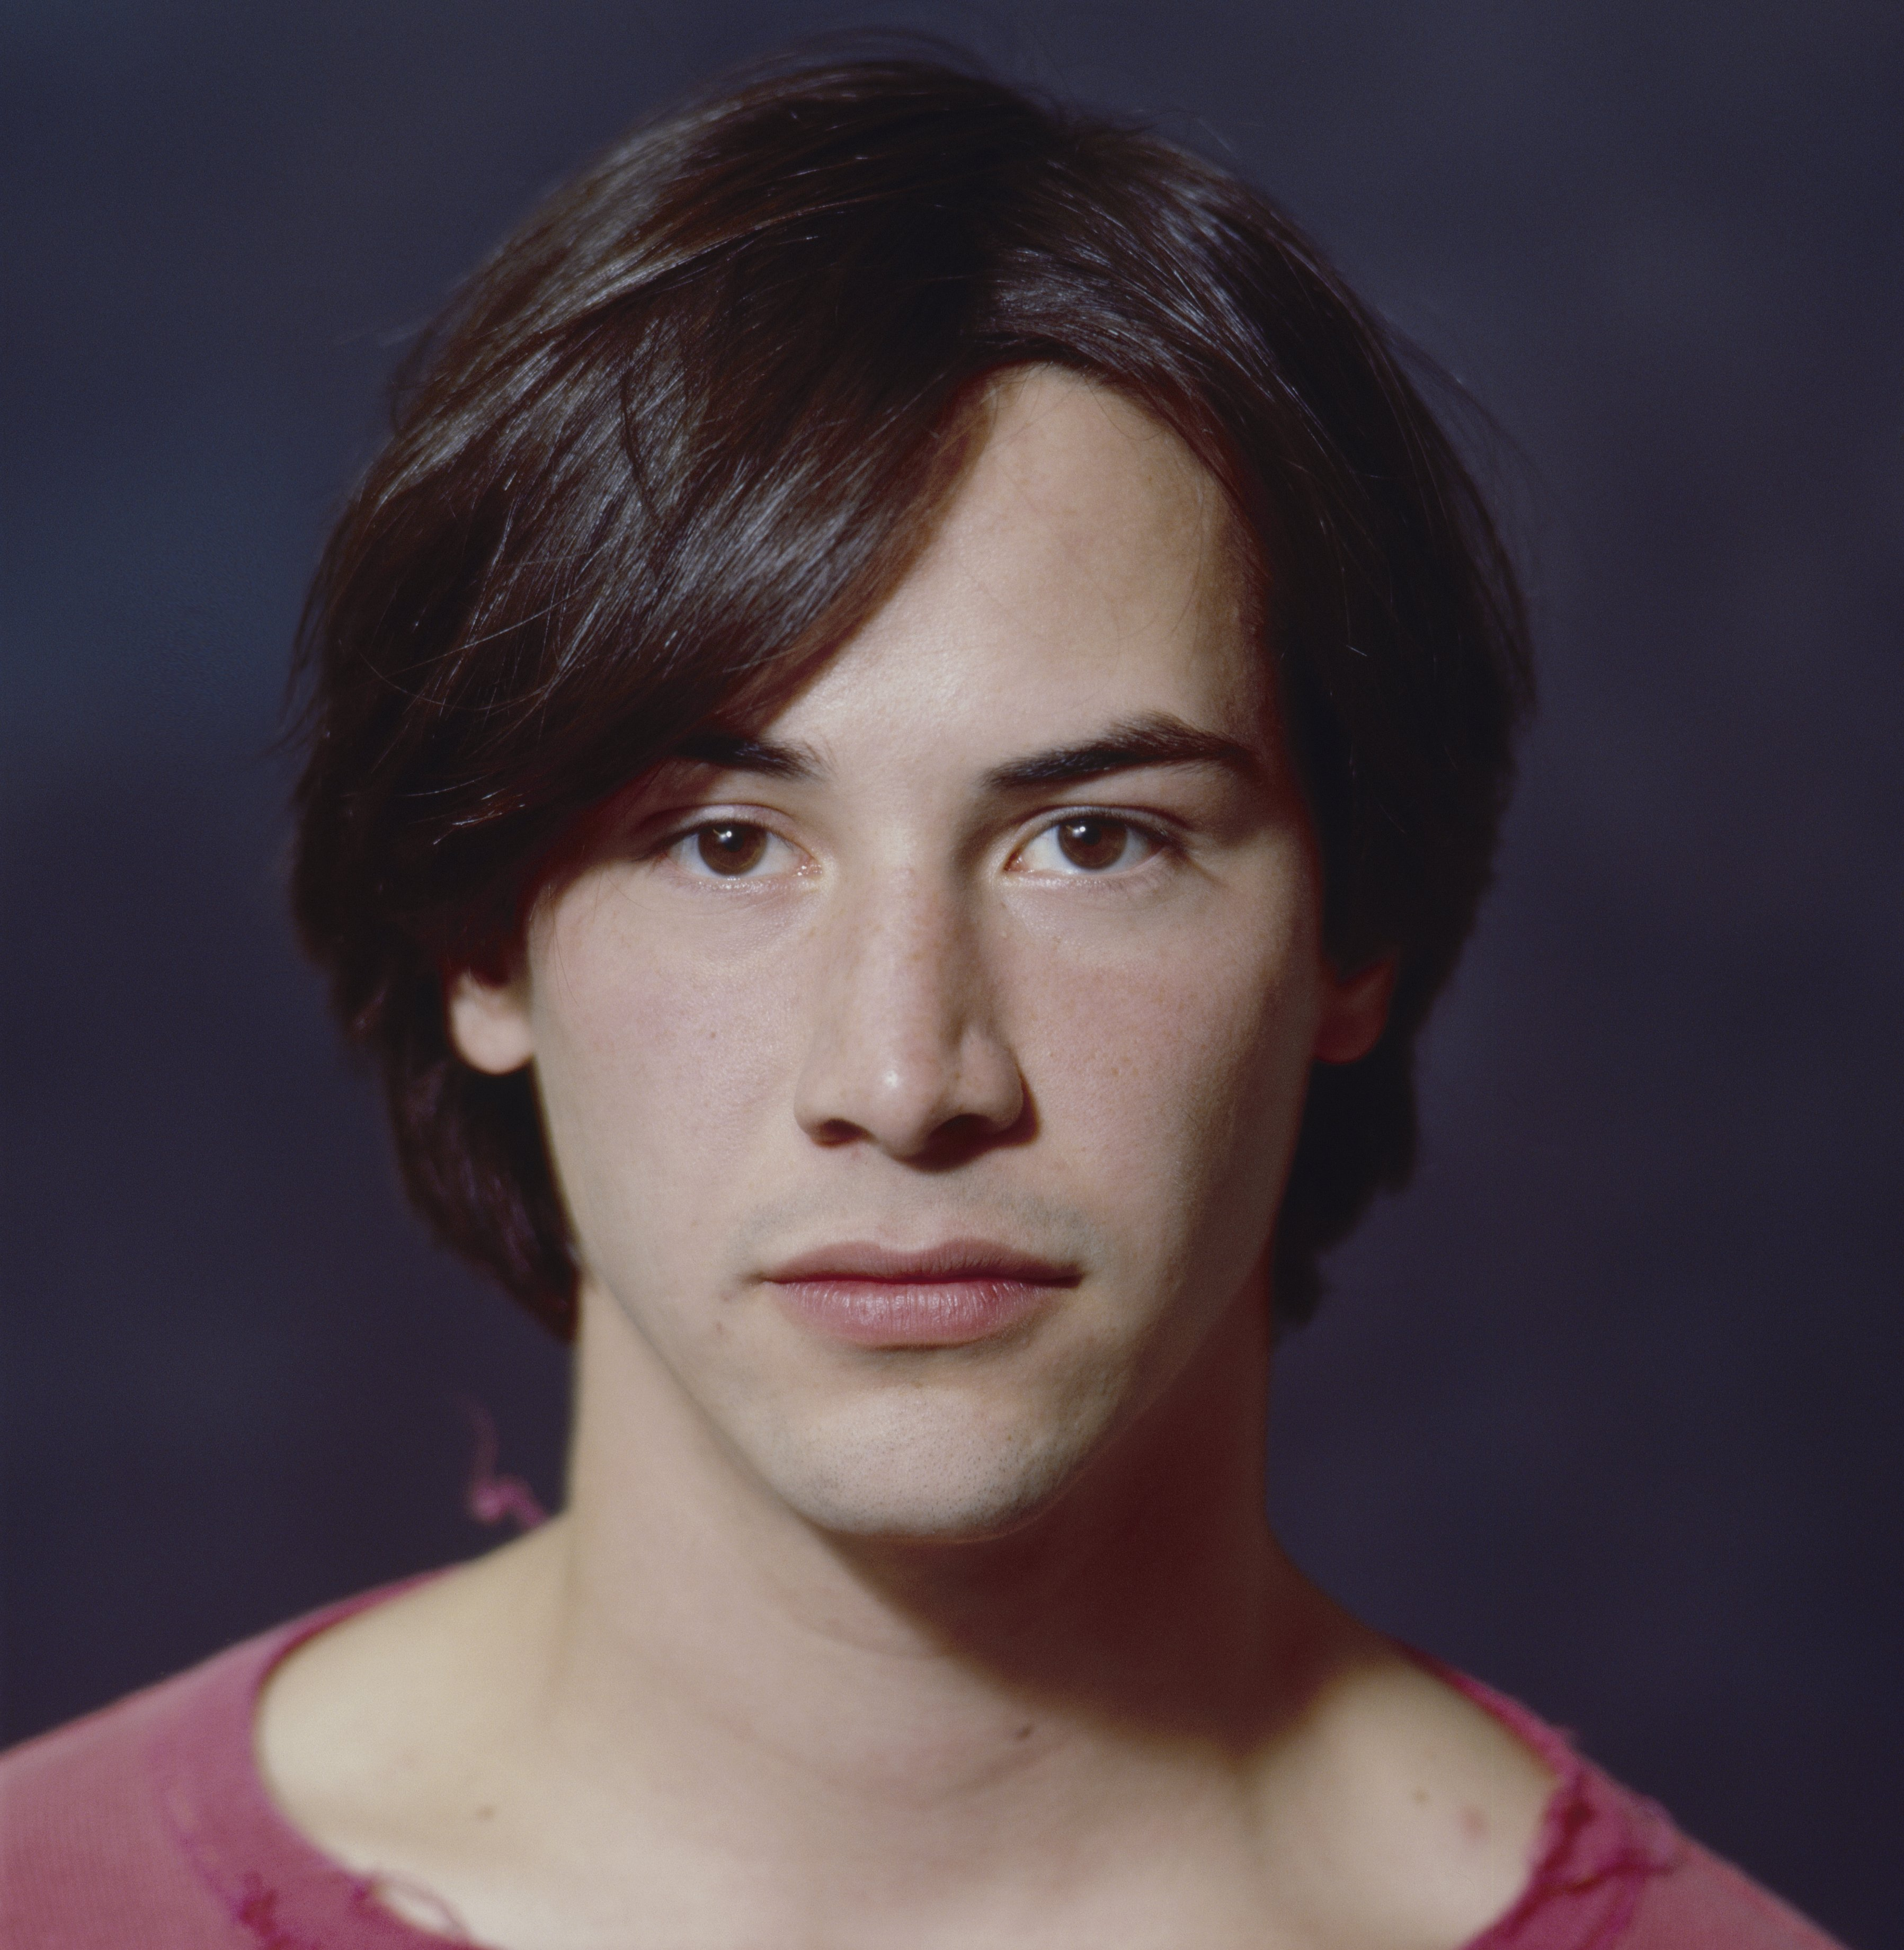 A portrait picture of Keanu Reeves taken in 1986. | Source: Getty Images.